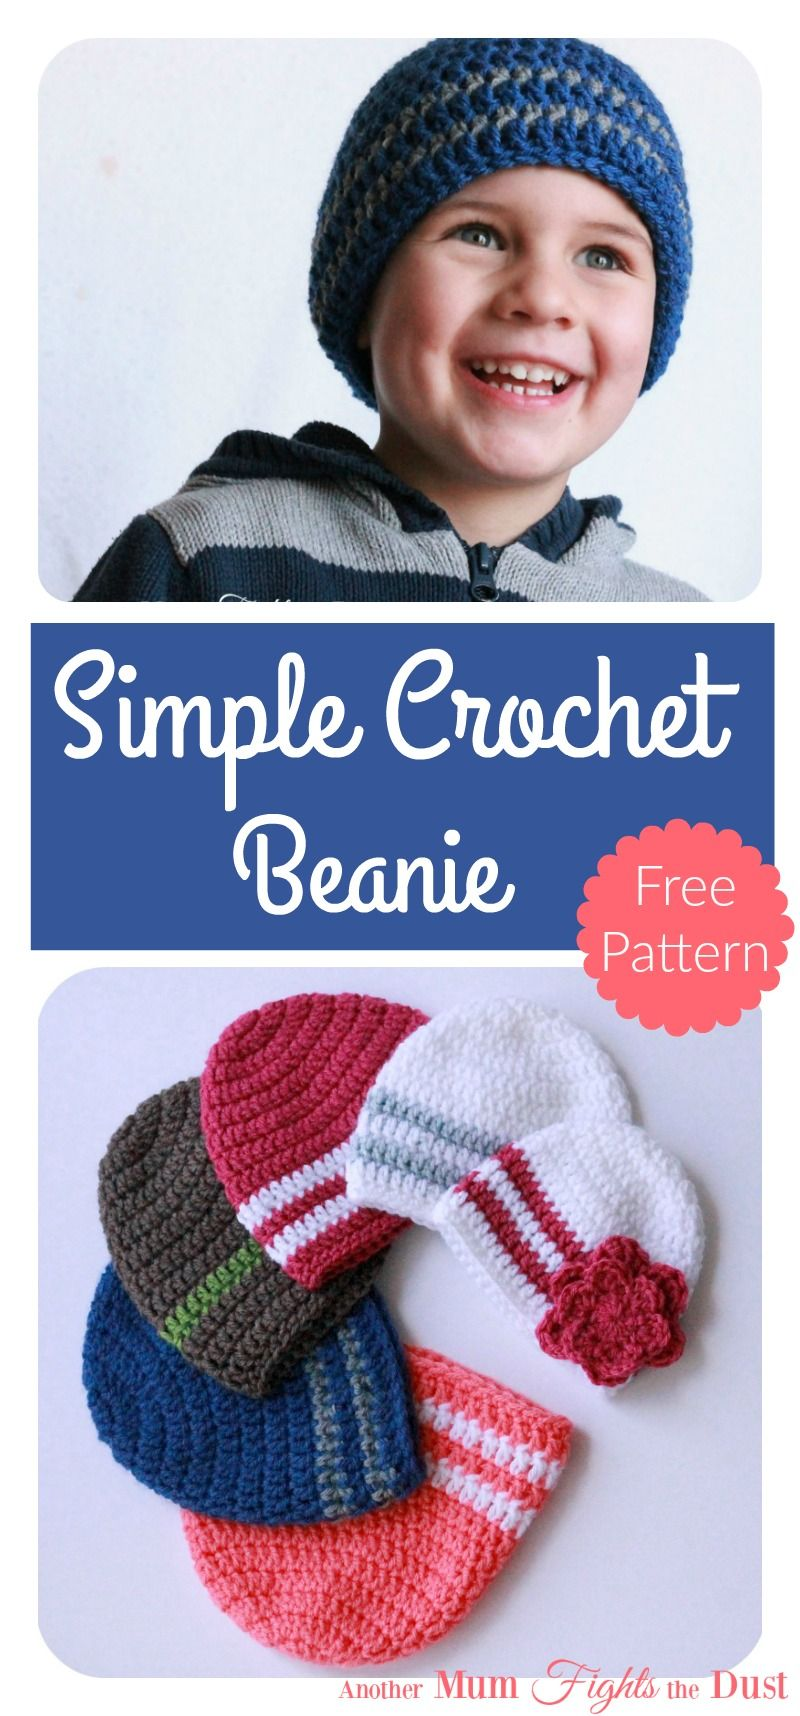 Simple crochet beanie free pattern easy crochet hat crochet free crochet pattern easy crochet hat pattern crochet beanie pattern bankloansurffo Choice Image